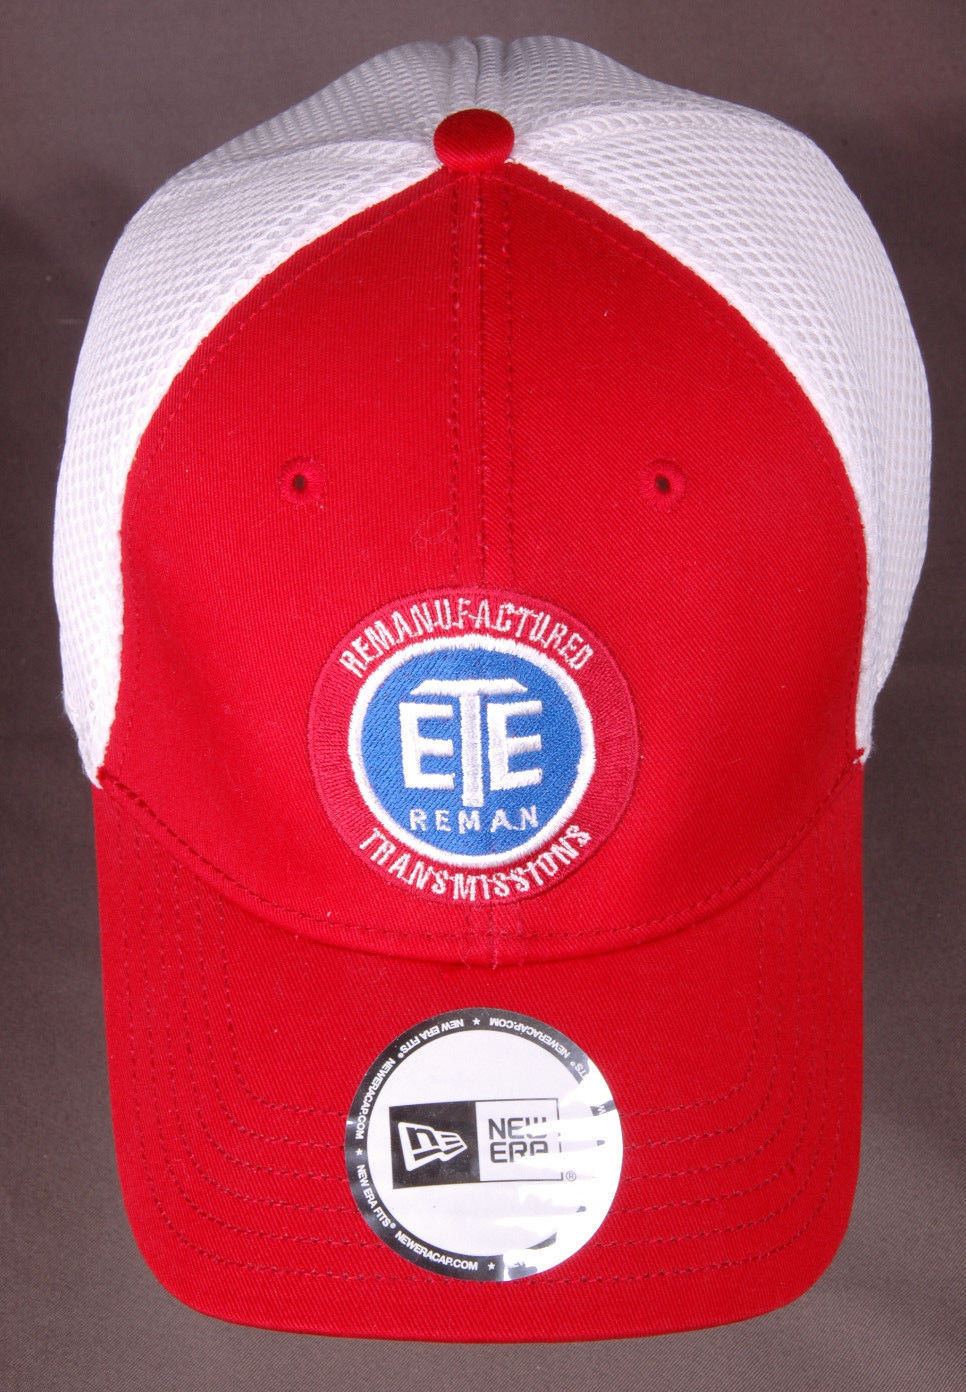 6ceb4c4922a Vtg ETE REMAN Remanufactured Transmissions Baseball Hat-Red White-Mesh  Back-Auto -  23.36 · Advanced search for New Era Baseball Hat